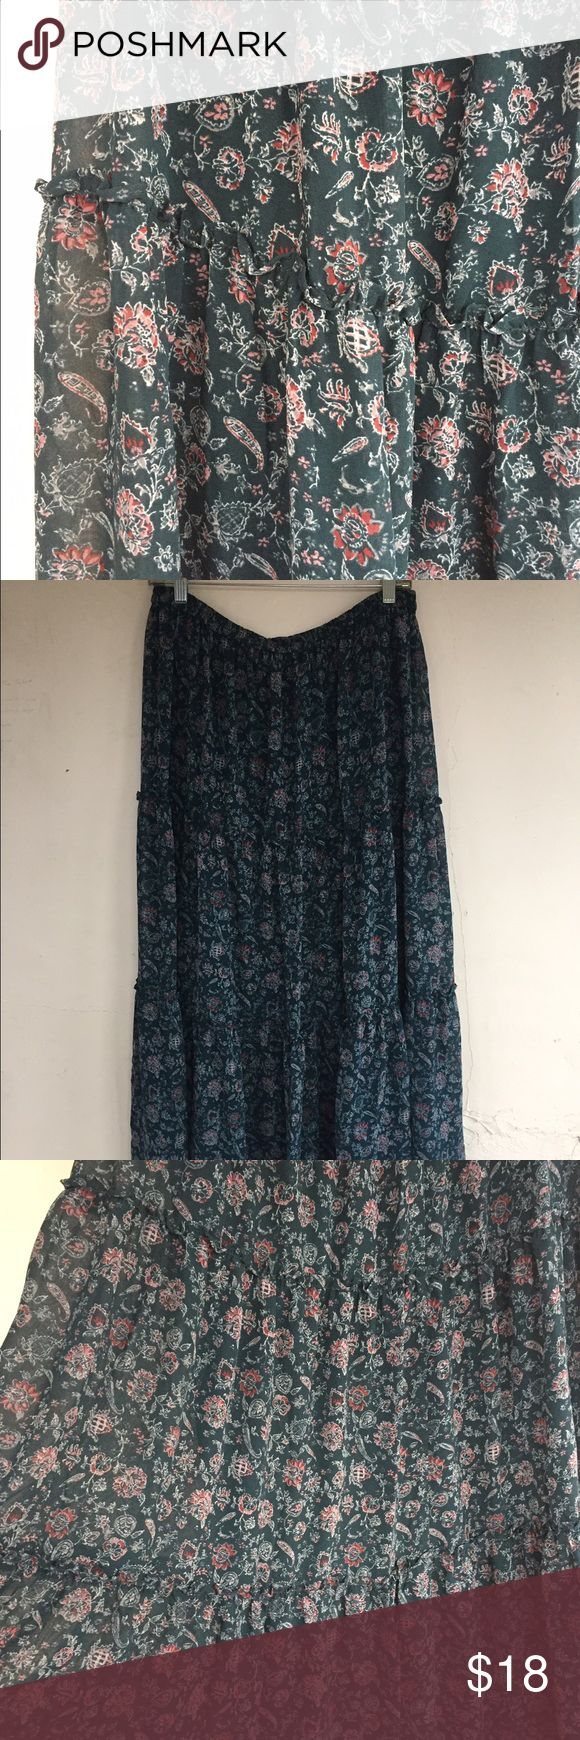 Uniqlo Floral Tiered Maxi Skirt NWOT Tiered maxi dress, falls below my feet. Never been worn. Chiffon material with lining. New without tags Uniqlo Skirts Maxi